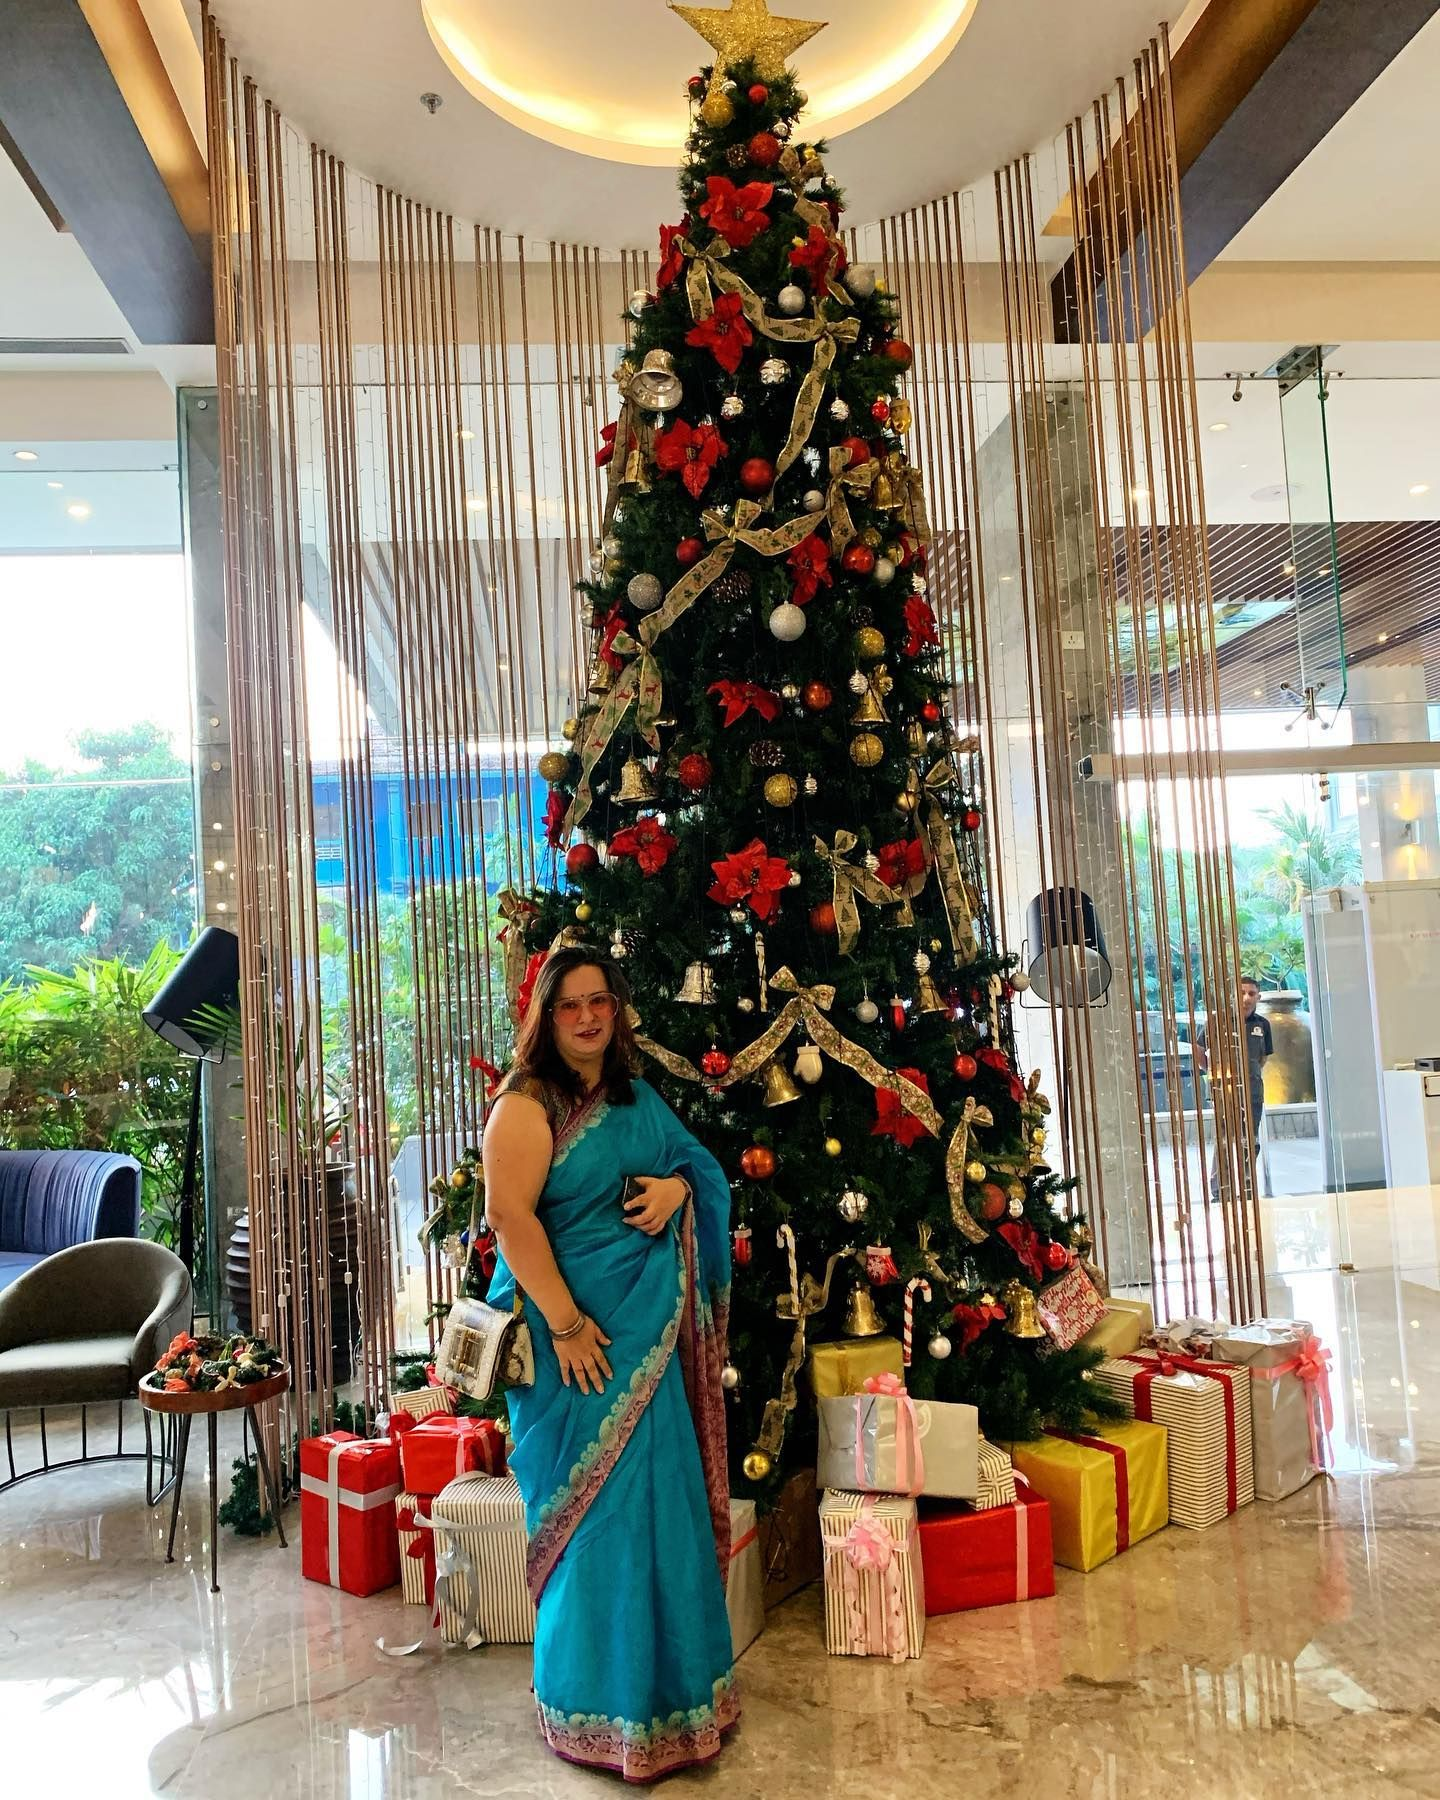 My favourite time of the year.. A beautiful Christmas Tree Lighting Ceremony at @lemeridiengoa awesome music.. Christmas carols.. a scrumptious spread of sweets and savouries and a wonderful time spent with family 😍 . . . .  #christmasiscoming #christmasfeels #favouritetimeoftheyear #ikreatepassions #goablogger #christmastreelighting #christmastree #goalifestyleblogger #lifestyleblogger #goafoodblogger #foodblogger #desifeels #saree #dressedinasaree #ikreatepassions #flashesofdelight 📸 @armaan